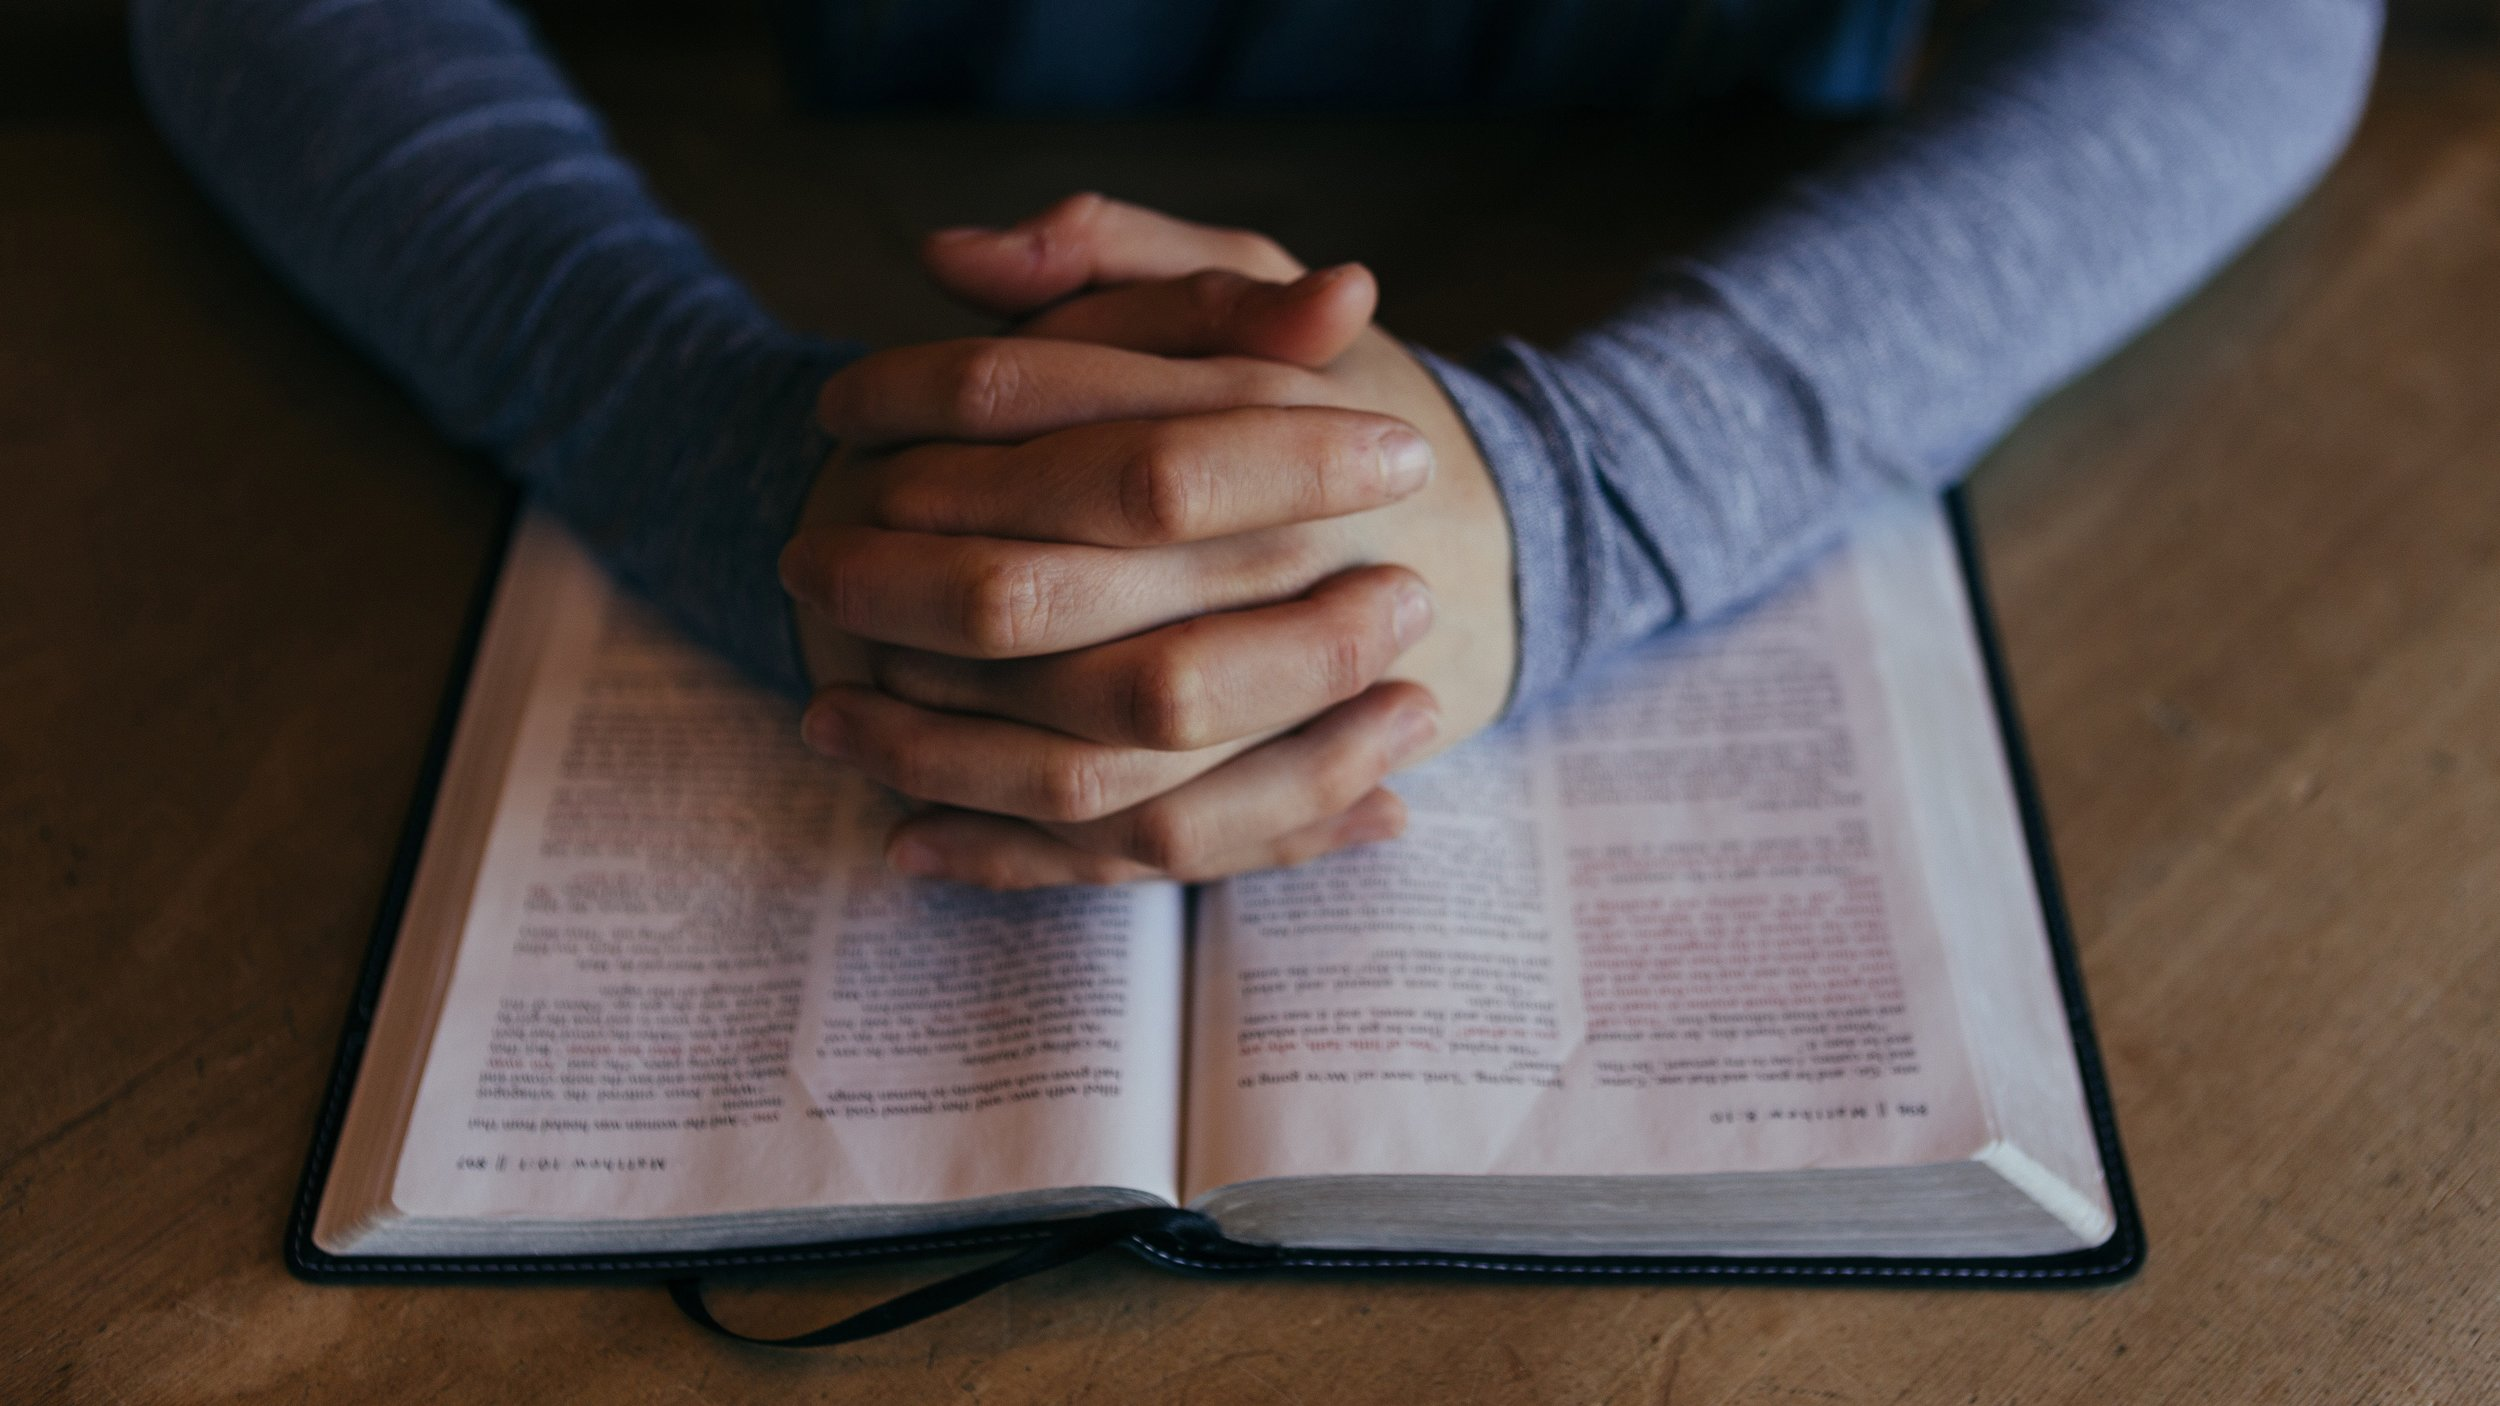 Praying Hands Bible Religious Stock Photo.jpg